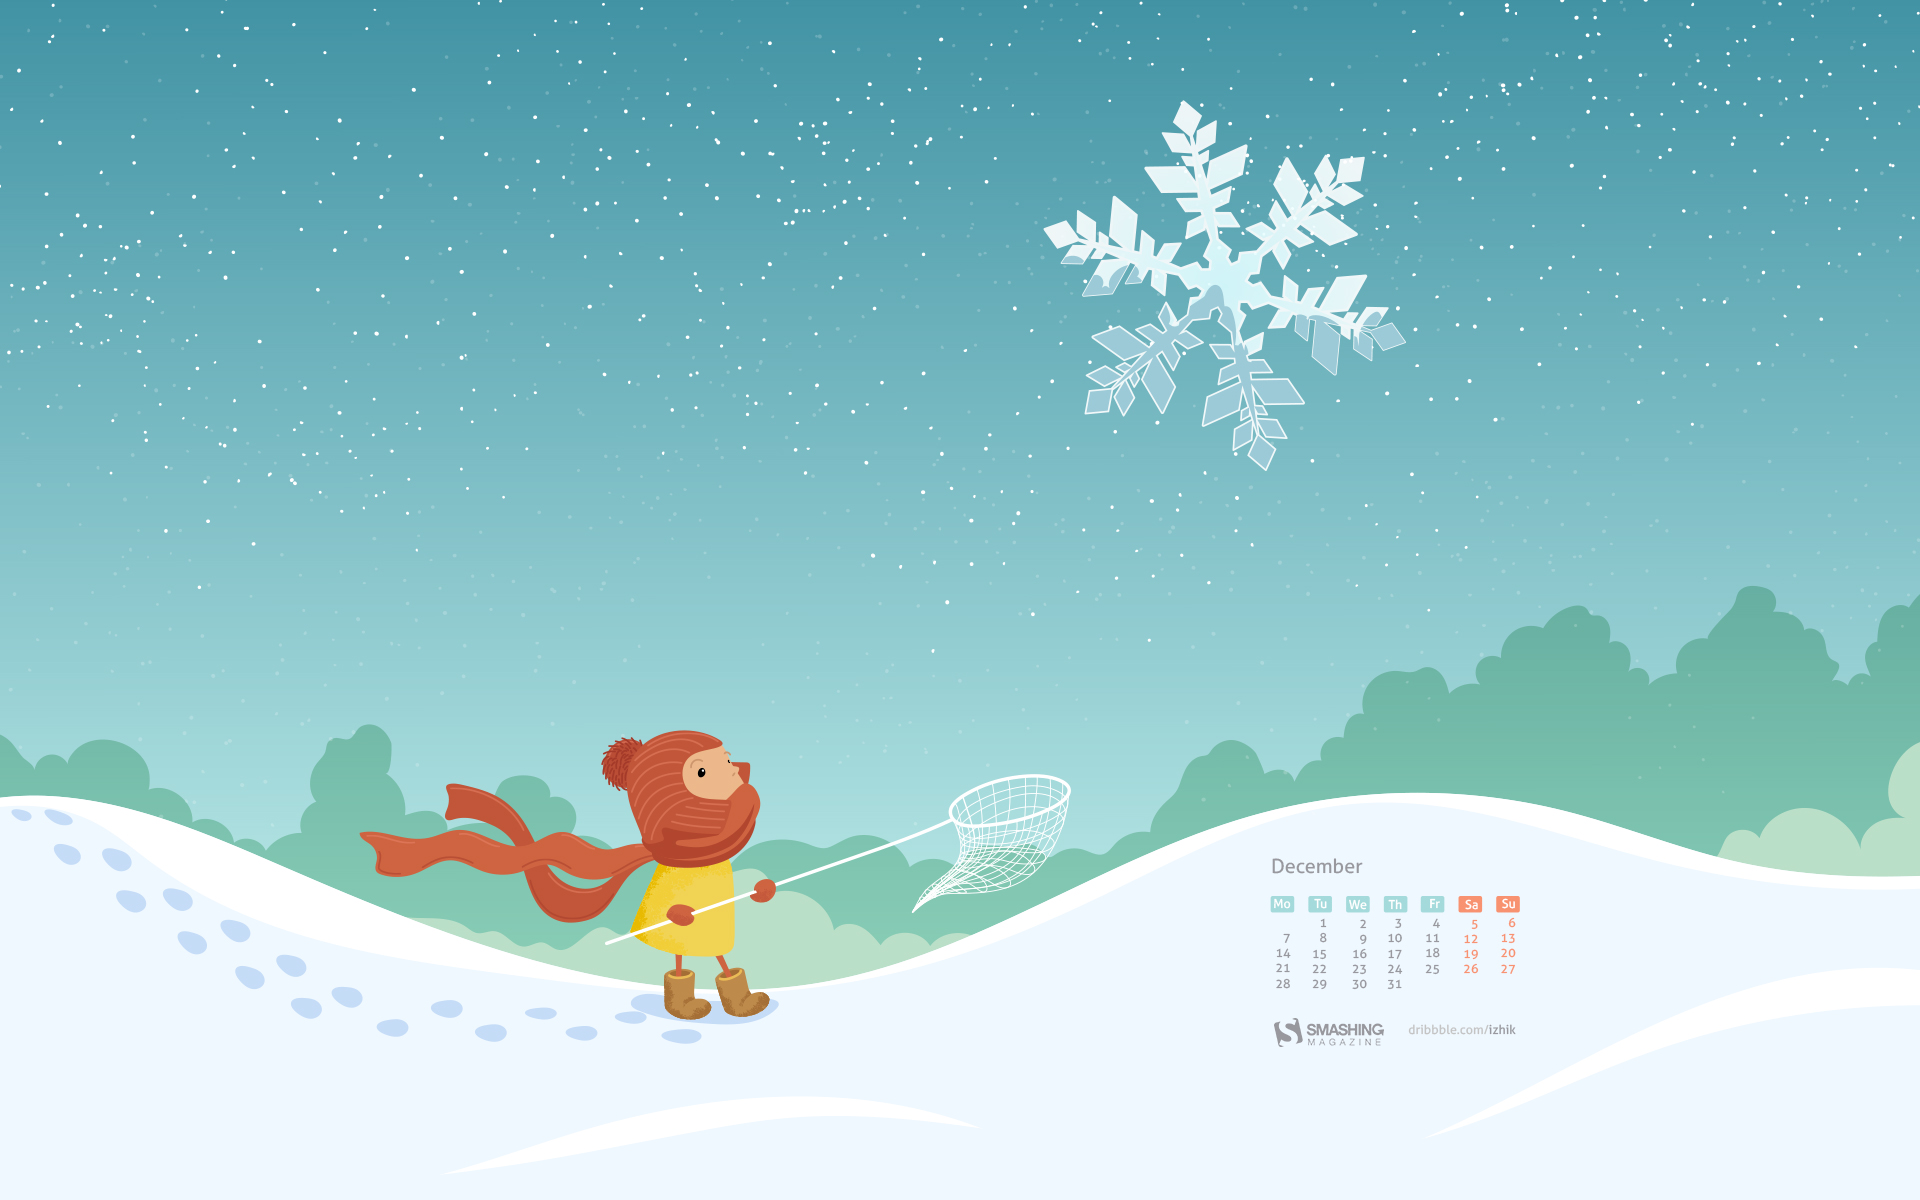 desktop wallpaper calendars december 2015 smashing magazine